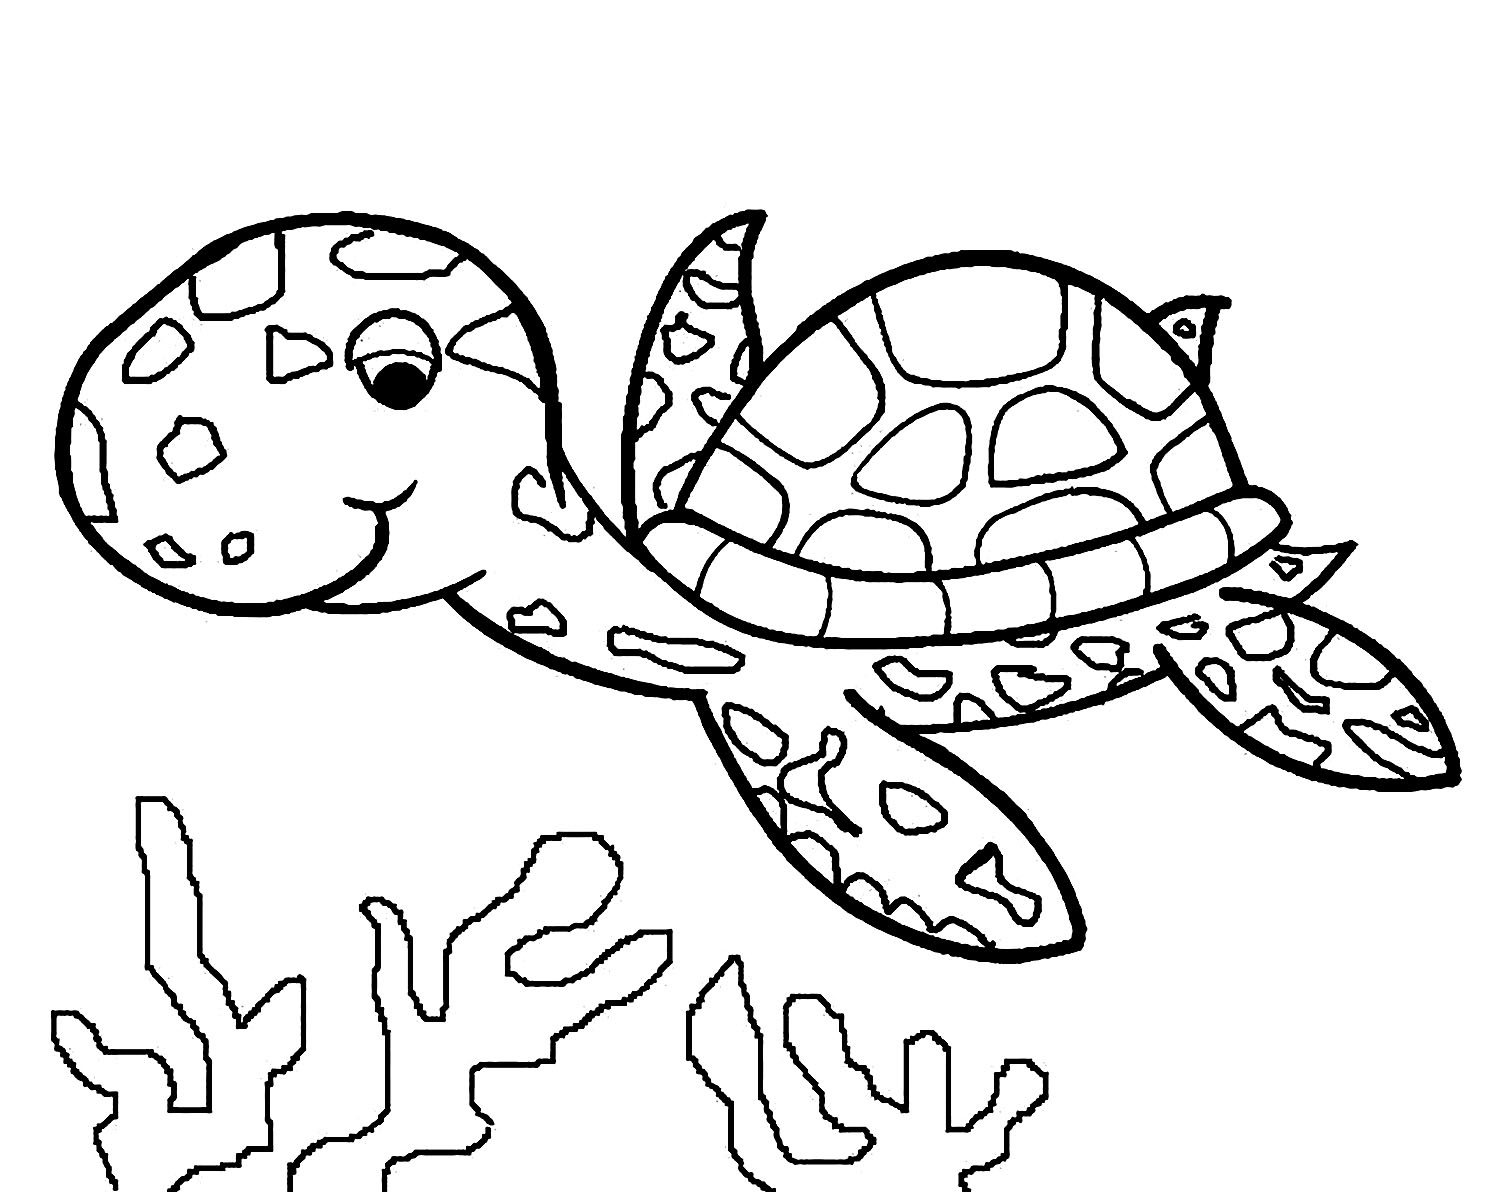 turtle pictures for coloring turtles to print turtles kids coloring pages pictures turtle for coloring